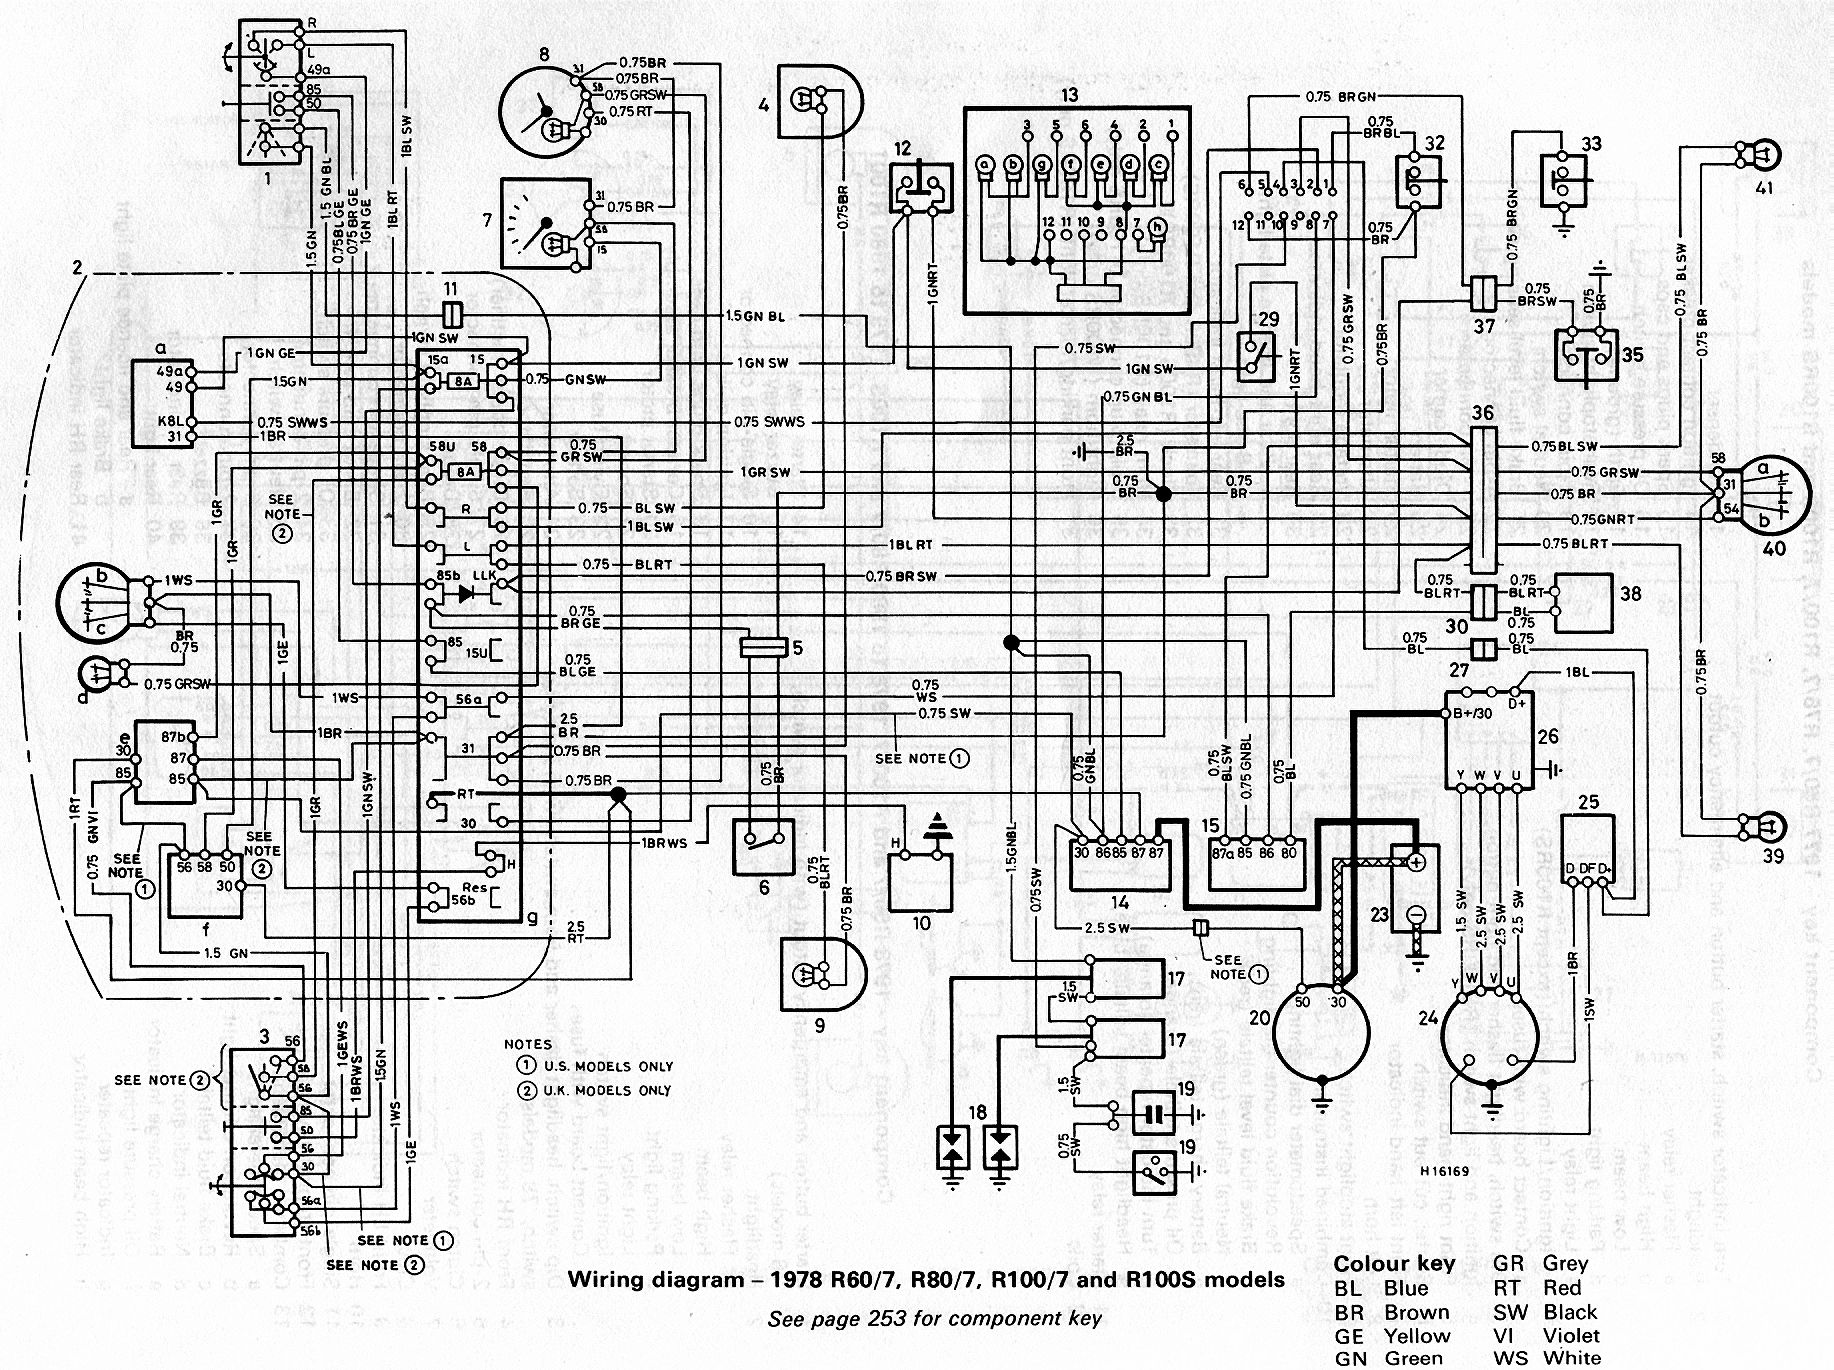 bmw r80 wiring loom collection of wiring diagram u2022 rh wiringbase today 1985 BMW R80RT 1985 bmw r80 wiring diagram